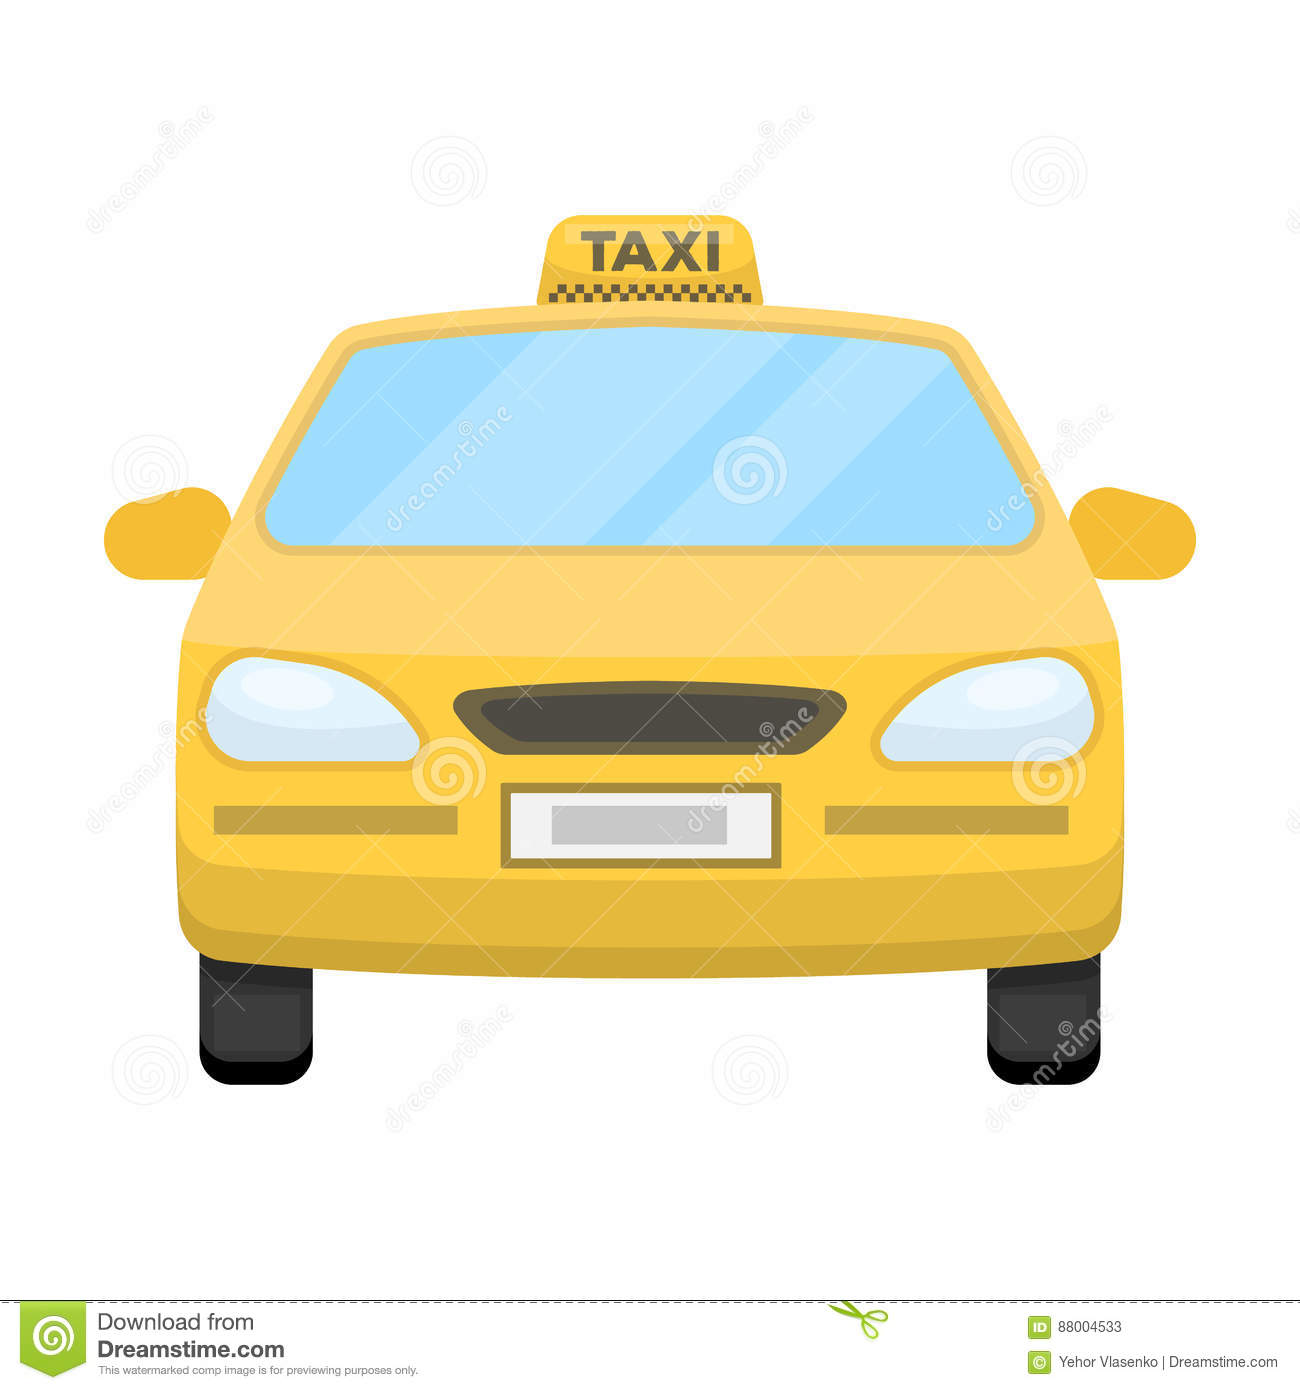 Travel Time Taxi Service